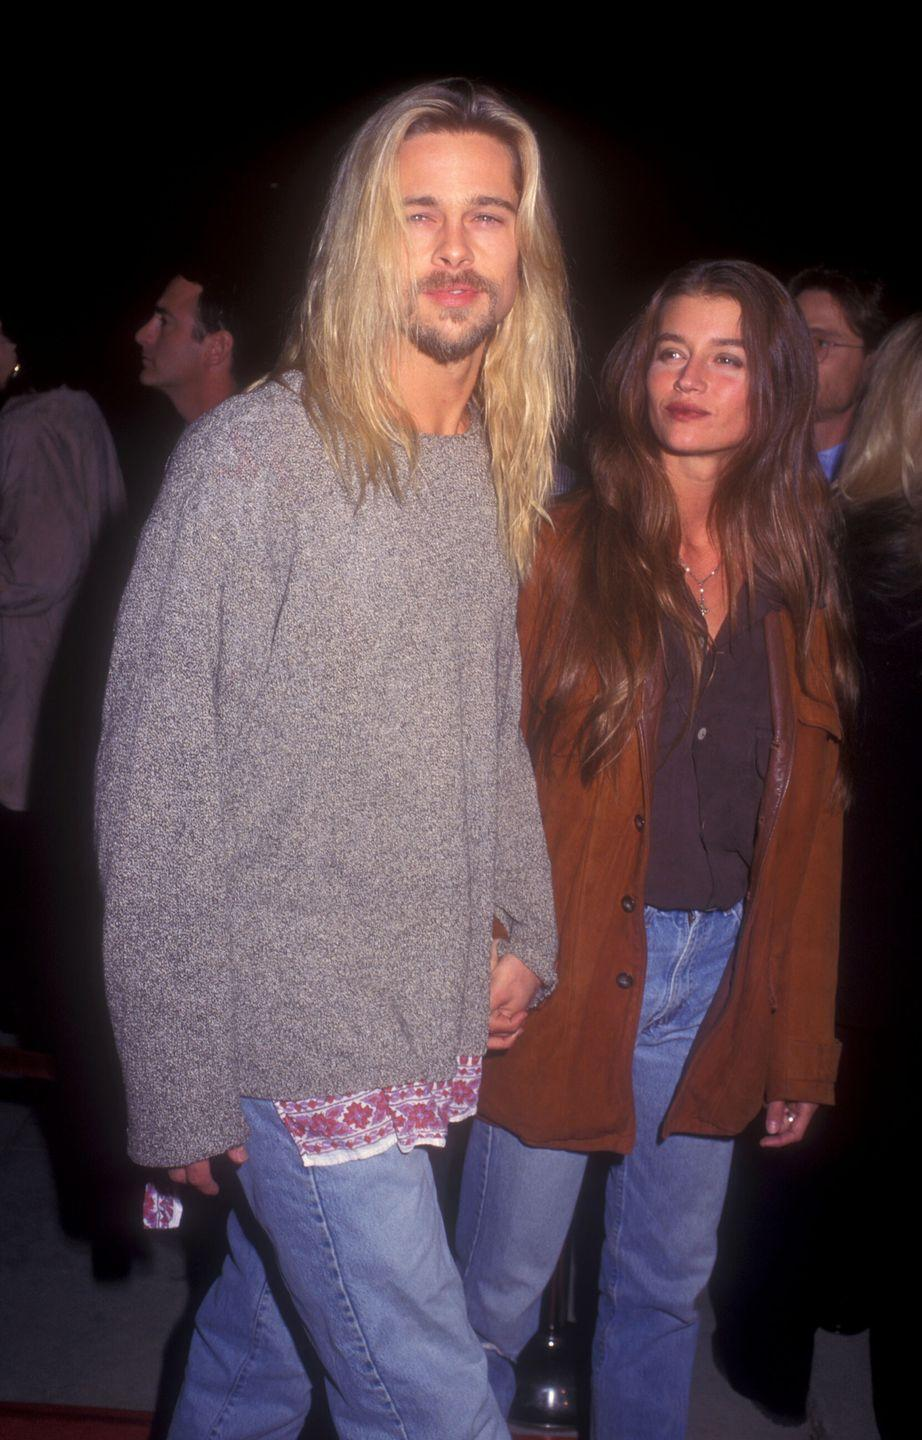 """<p>Pitt with then-girlfriend Jitka Pohlodek at the premiere of <em>Legends of the Fall. </em>The actor said he enjoyed making the film much more than his pervious hit, <em>Interview with the Vampire,</em> because he """"never saw the sun"""" when playing the undead Louis, telling <a href=""""https://www.vanityfair.com/news/1995/02/brad-pitt-199502"""" rel=""""nofollow noopener"""" target=""""_blank"""" data-ylk=""""slk:Vanity Fair"""" class=""""link rapid-noclick-resp""""><em>Vanity Fair</em></a> that it """"messed with [his] day.""""</p>"""